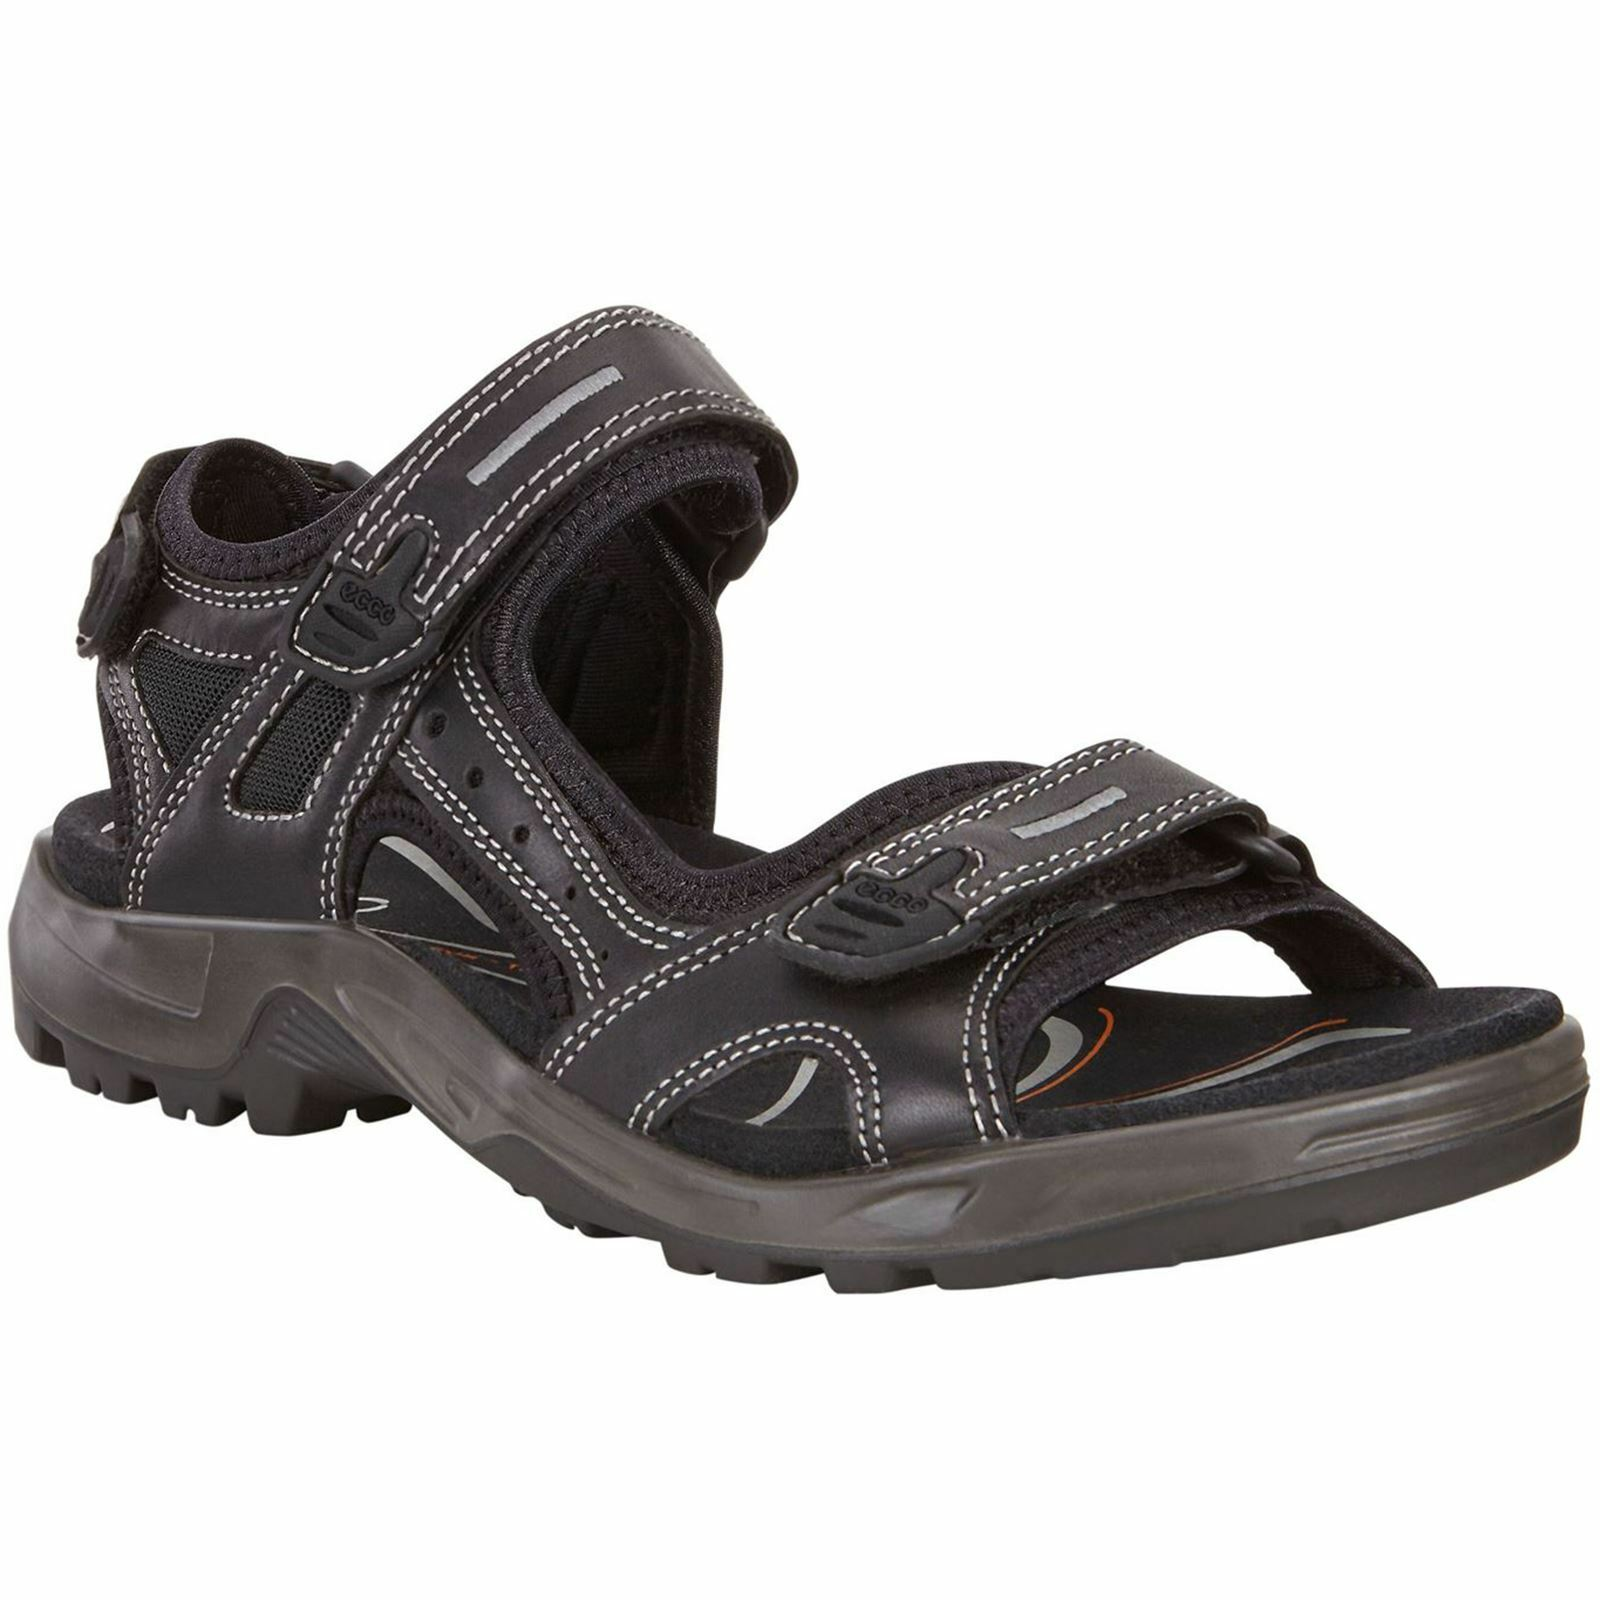 Ecco Offroad Black Mens Leather Summer Strappy Outdoor Activity Sports Sandals